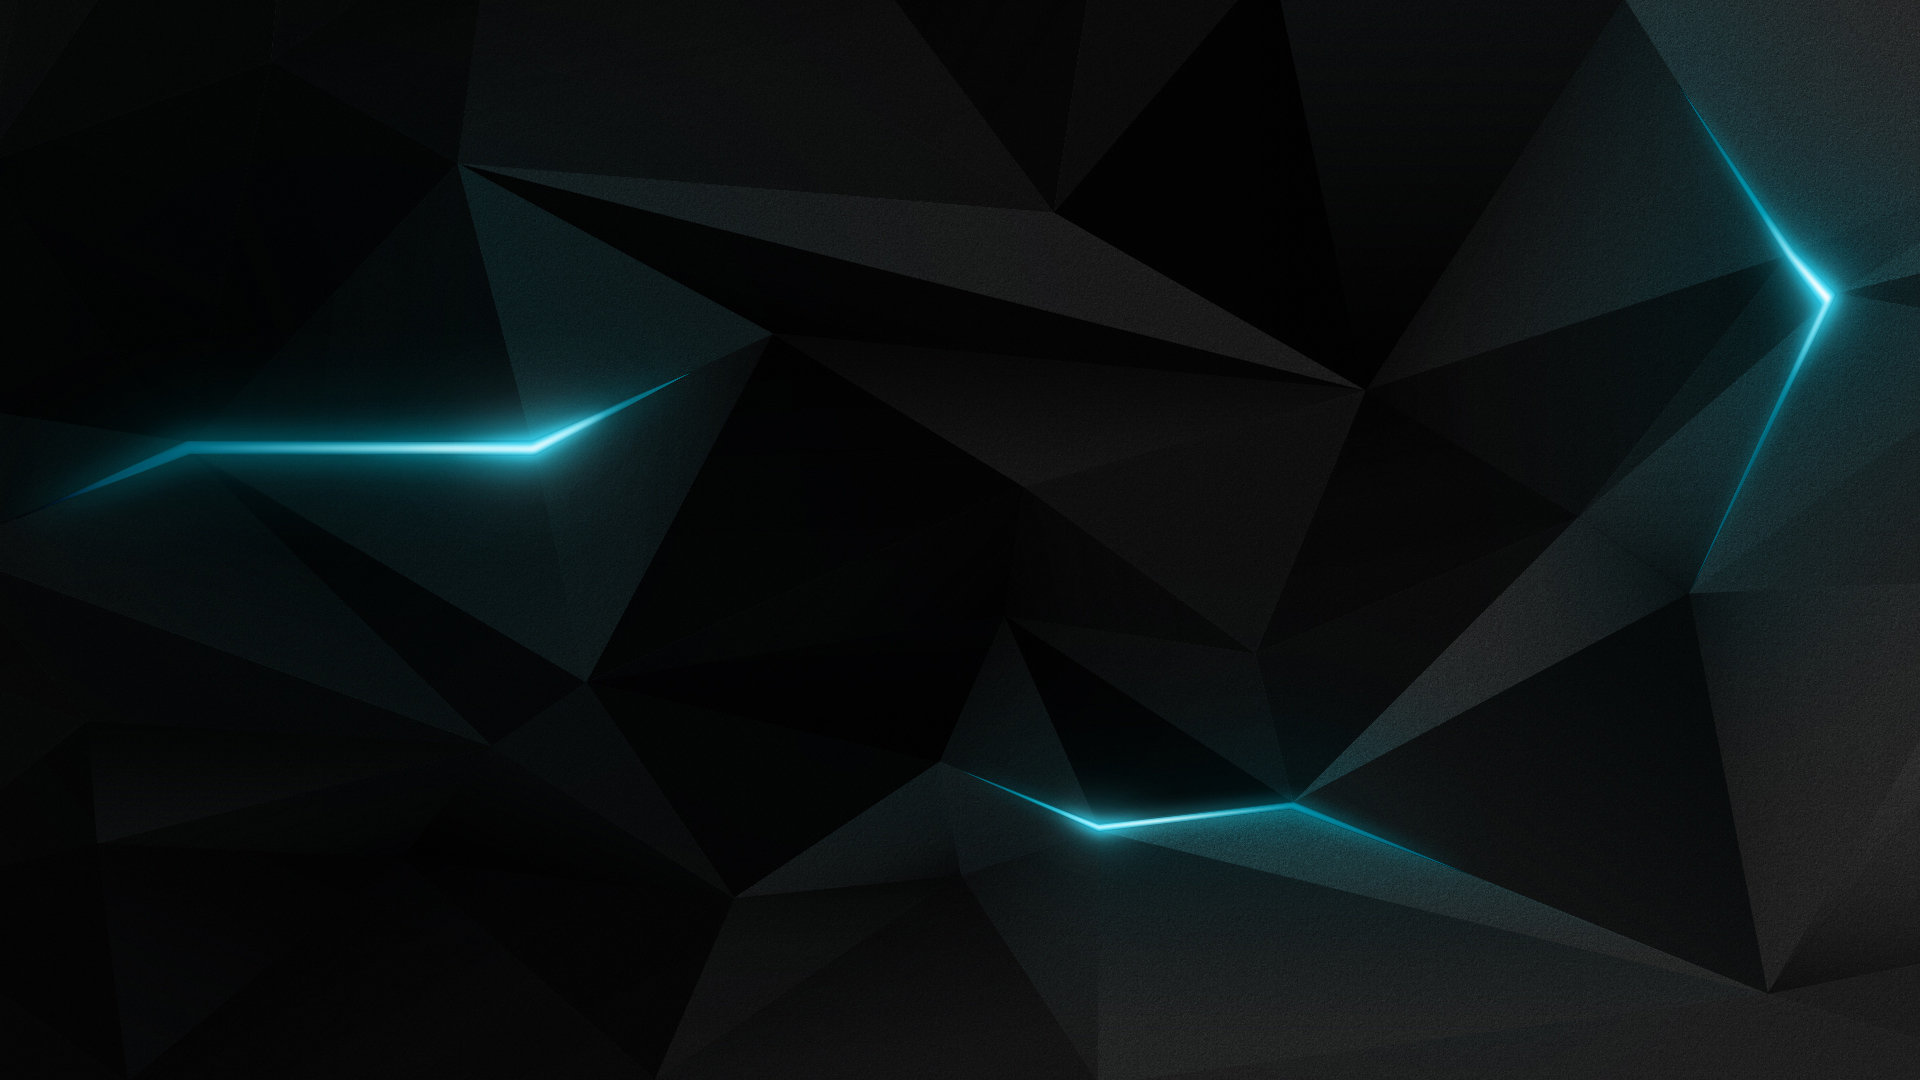 Acer Predator Triton 700 Wallpaper Community